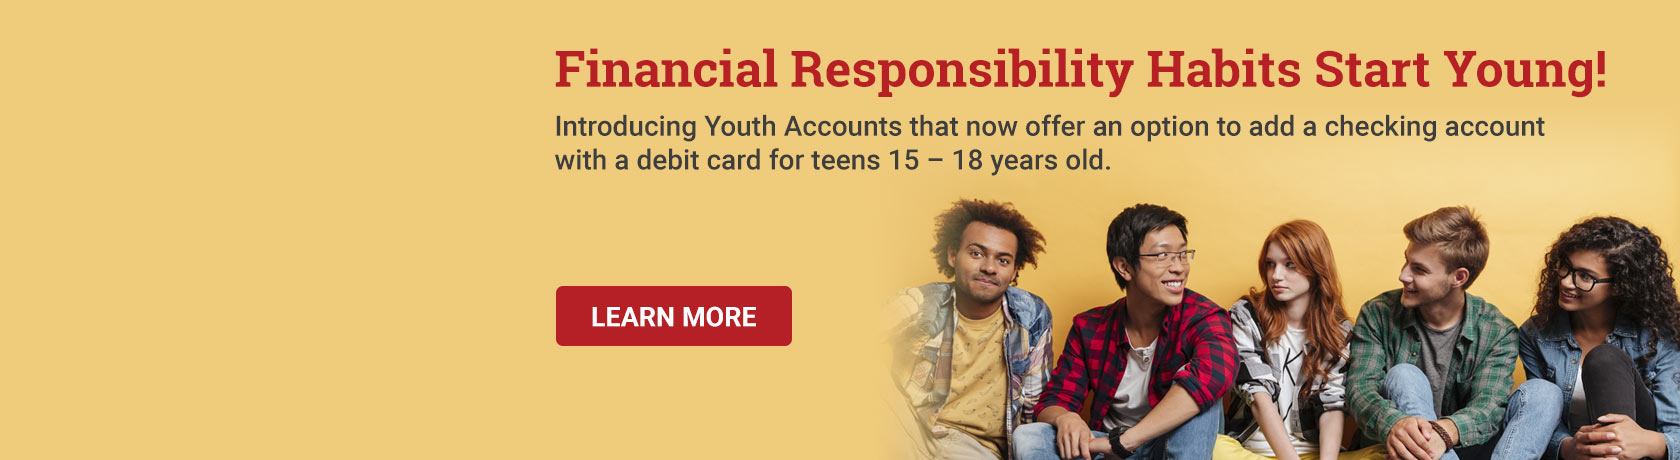 Financial Responsibility Habits Start Young! Introducing Youth Accounts that now offer an option to add a checking account with a debit card for teens 15 – 18 years old.  Learn More.